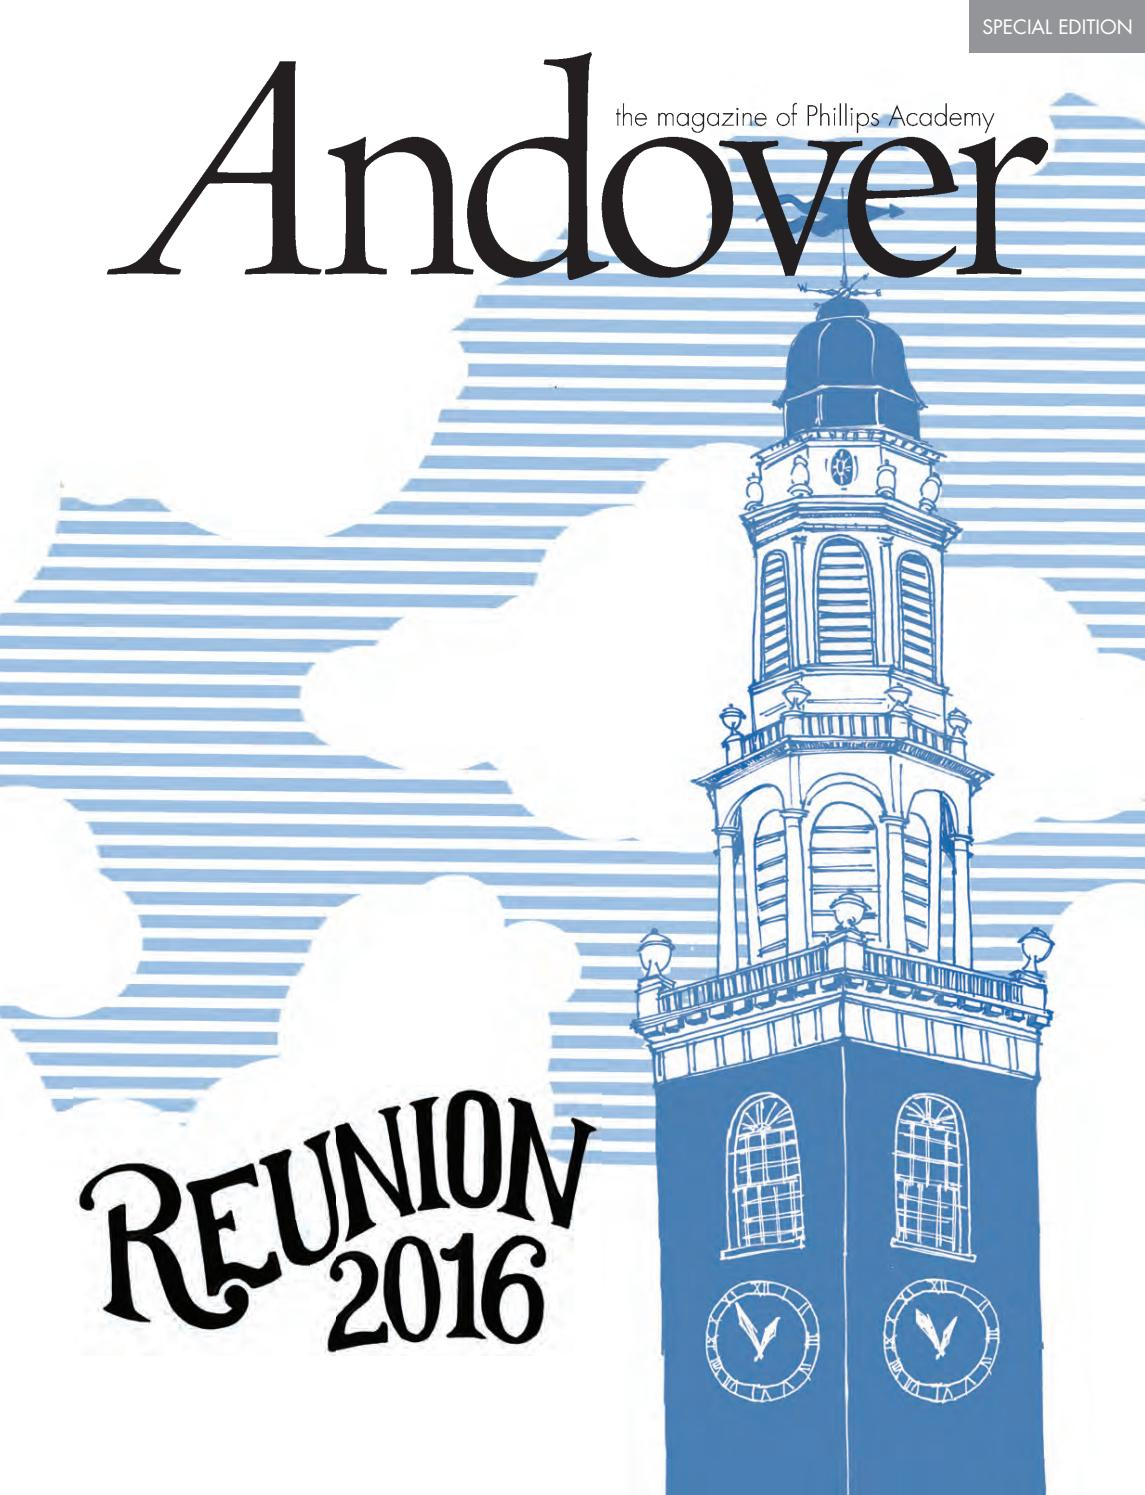 Andover magazine — Reunion 2016 Special Edition by Phillips Academy - issuu